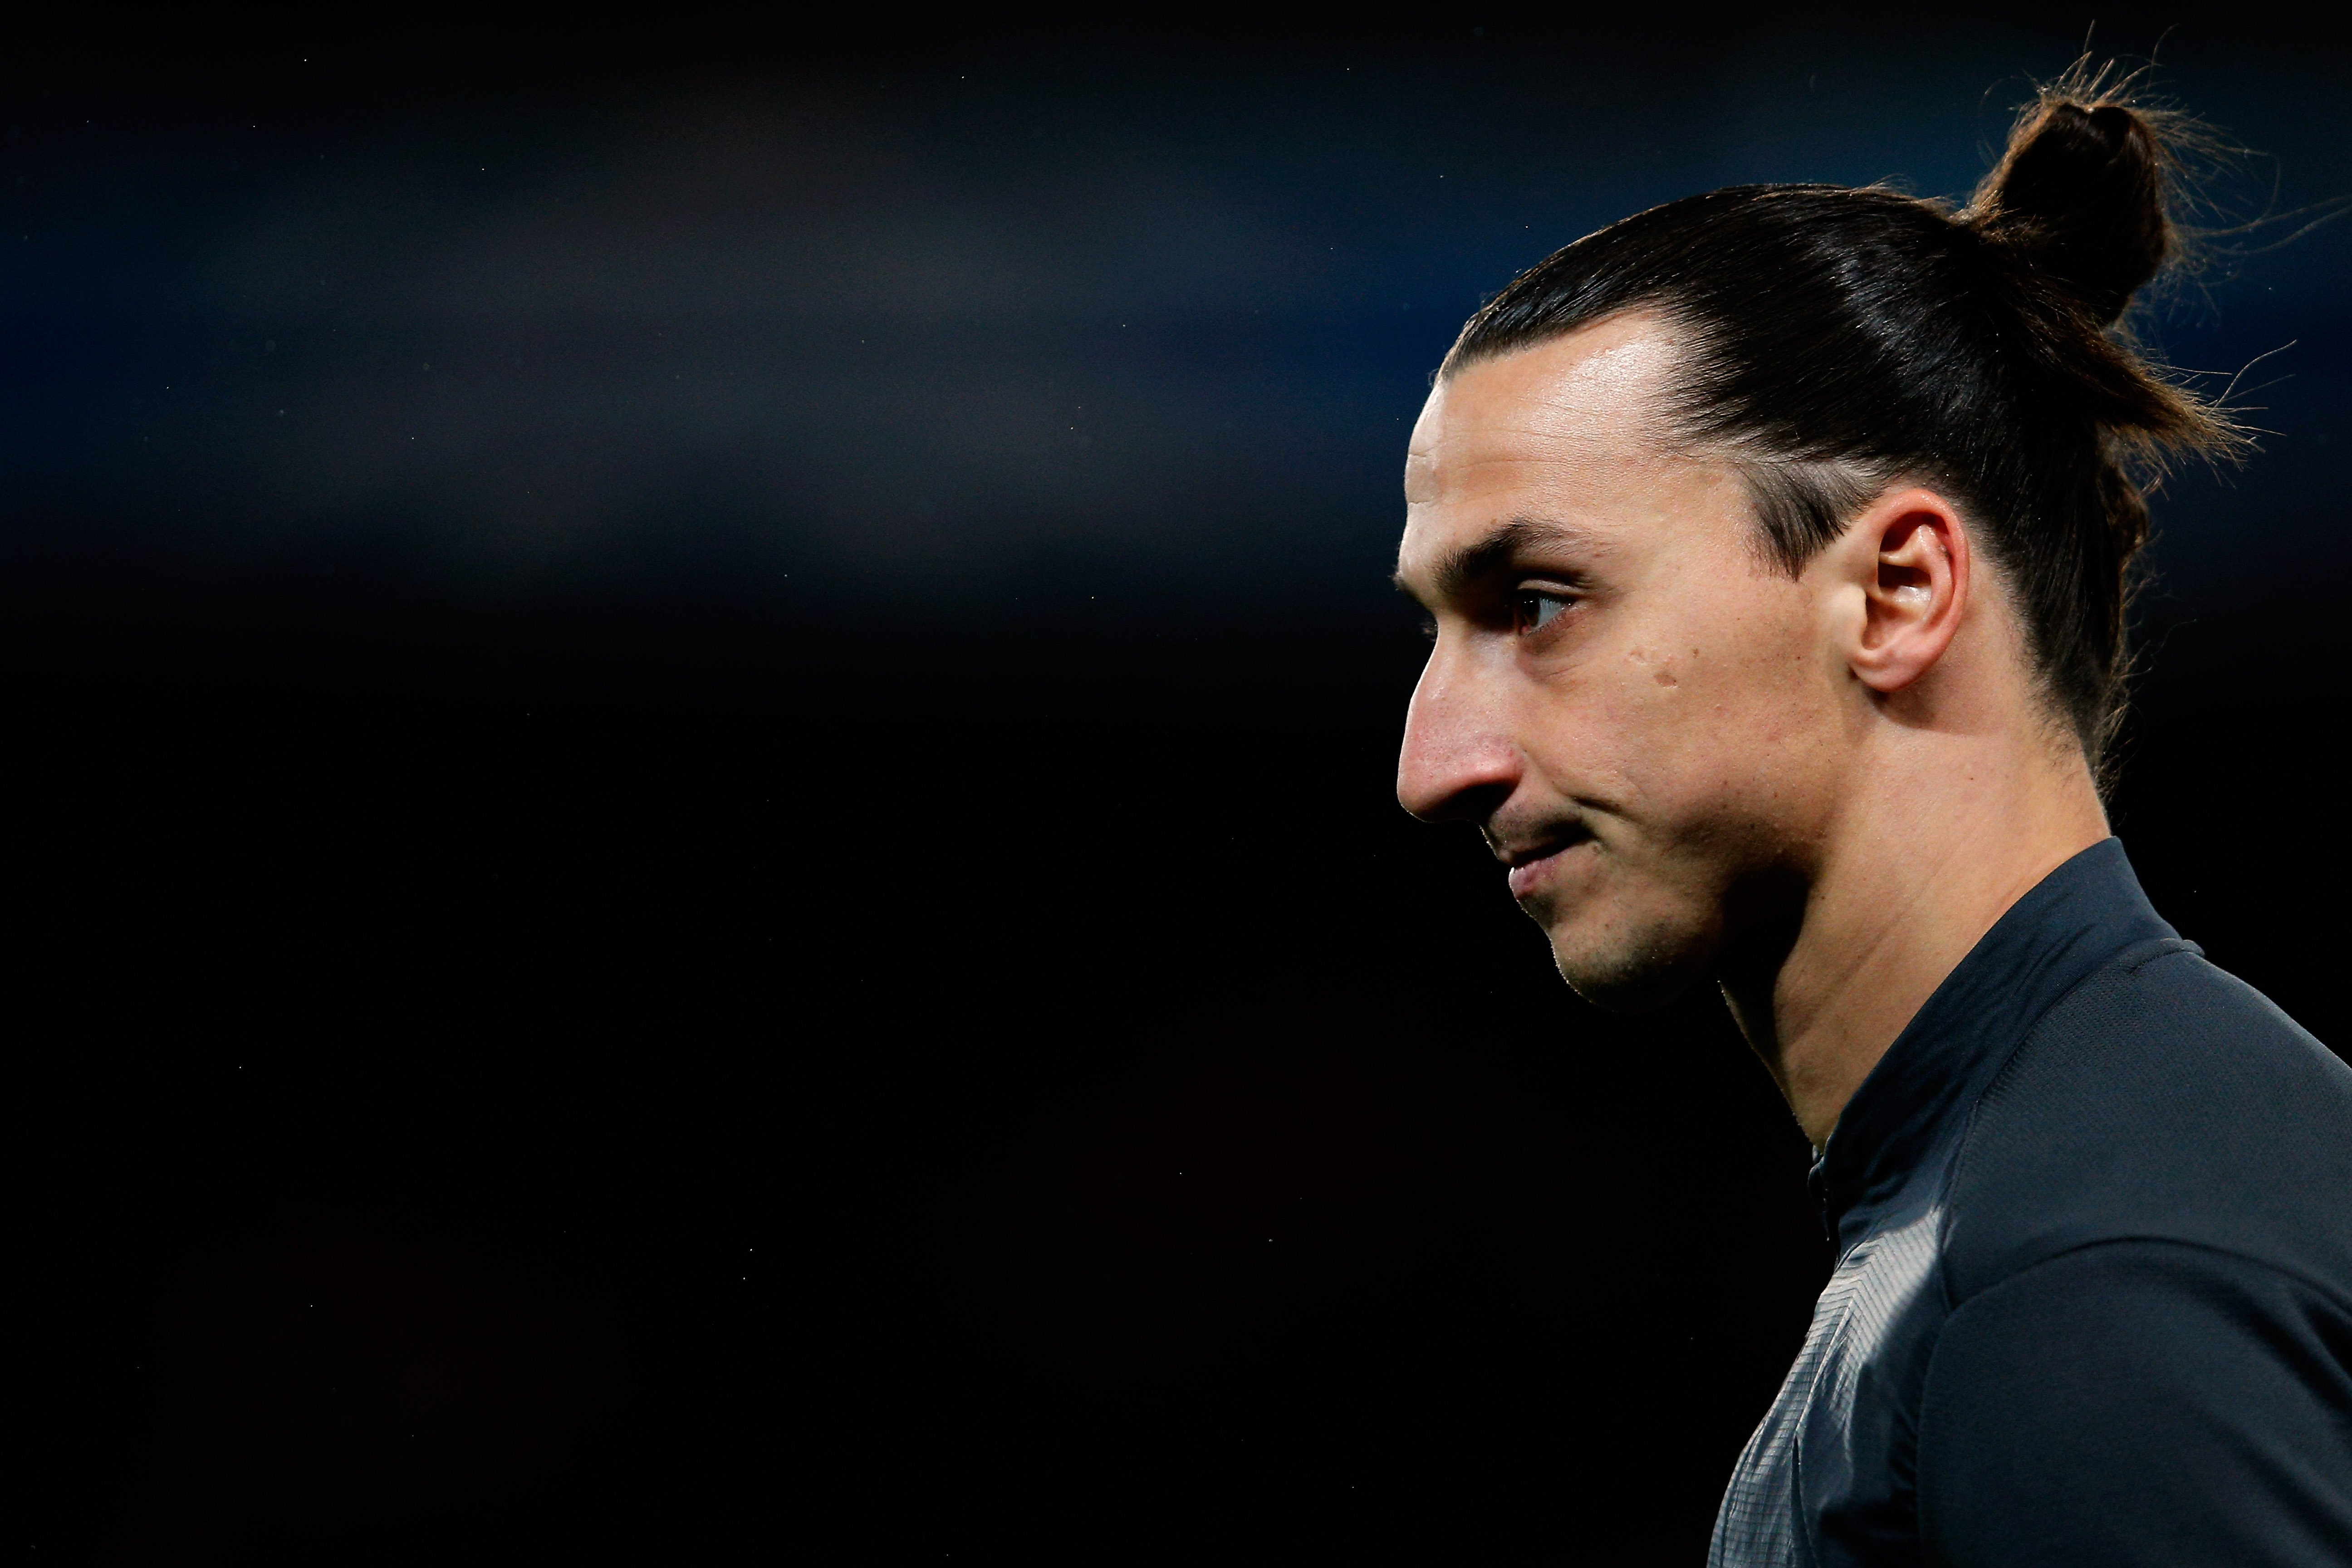 Zlatan Ibrahimovic 2013 HD Wallpaper 1140 5184x3456